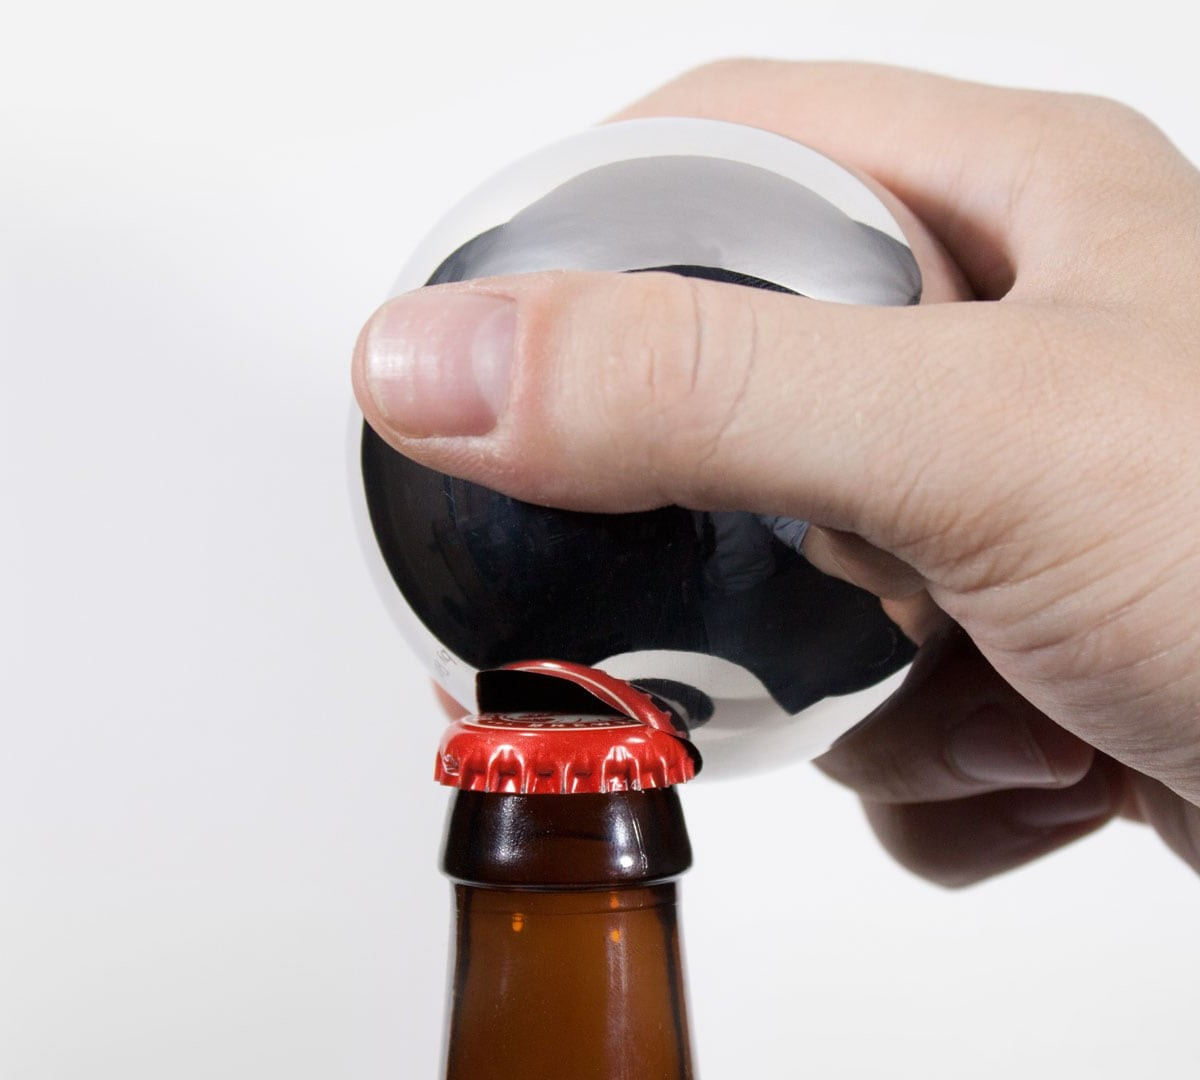 Convex bottle opener has an elegant design borrowed from heavy industry